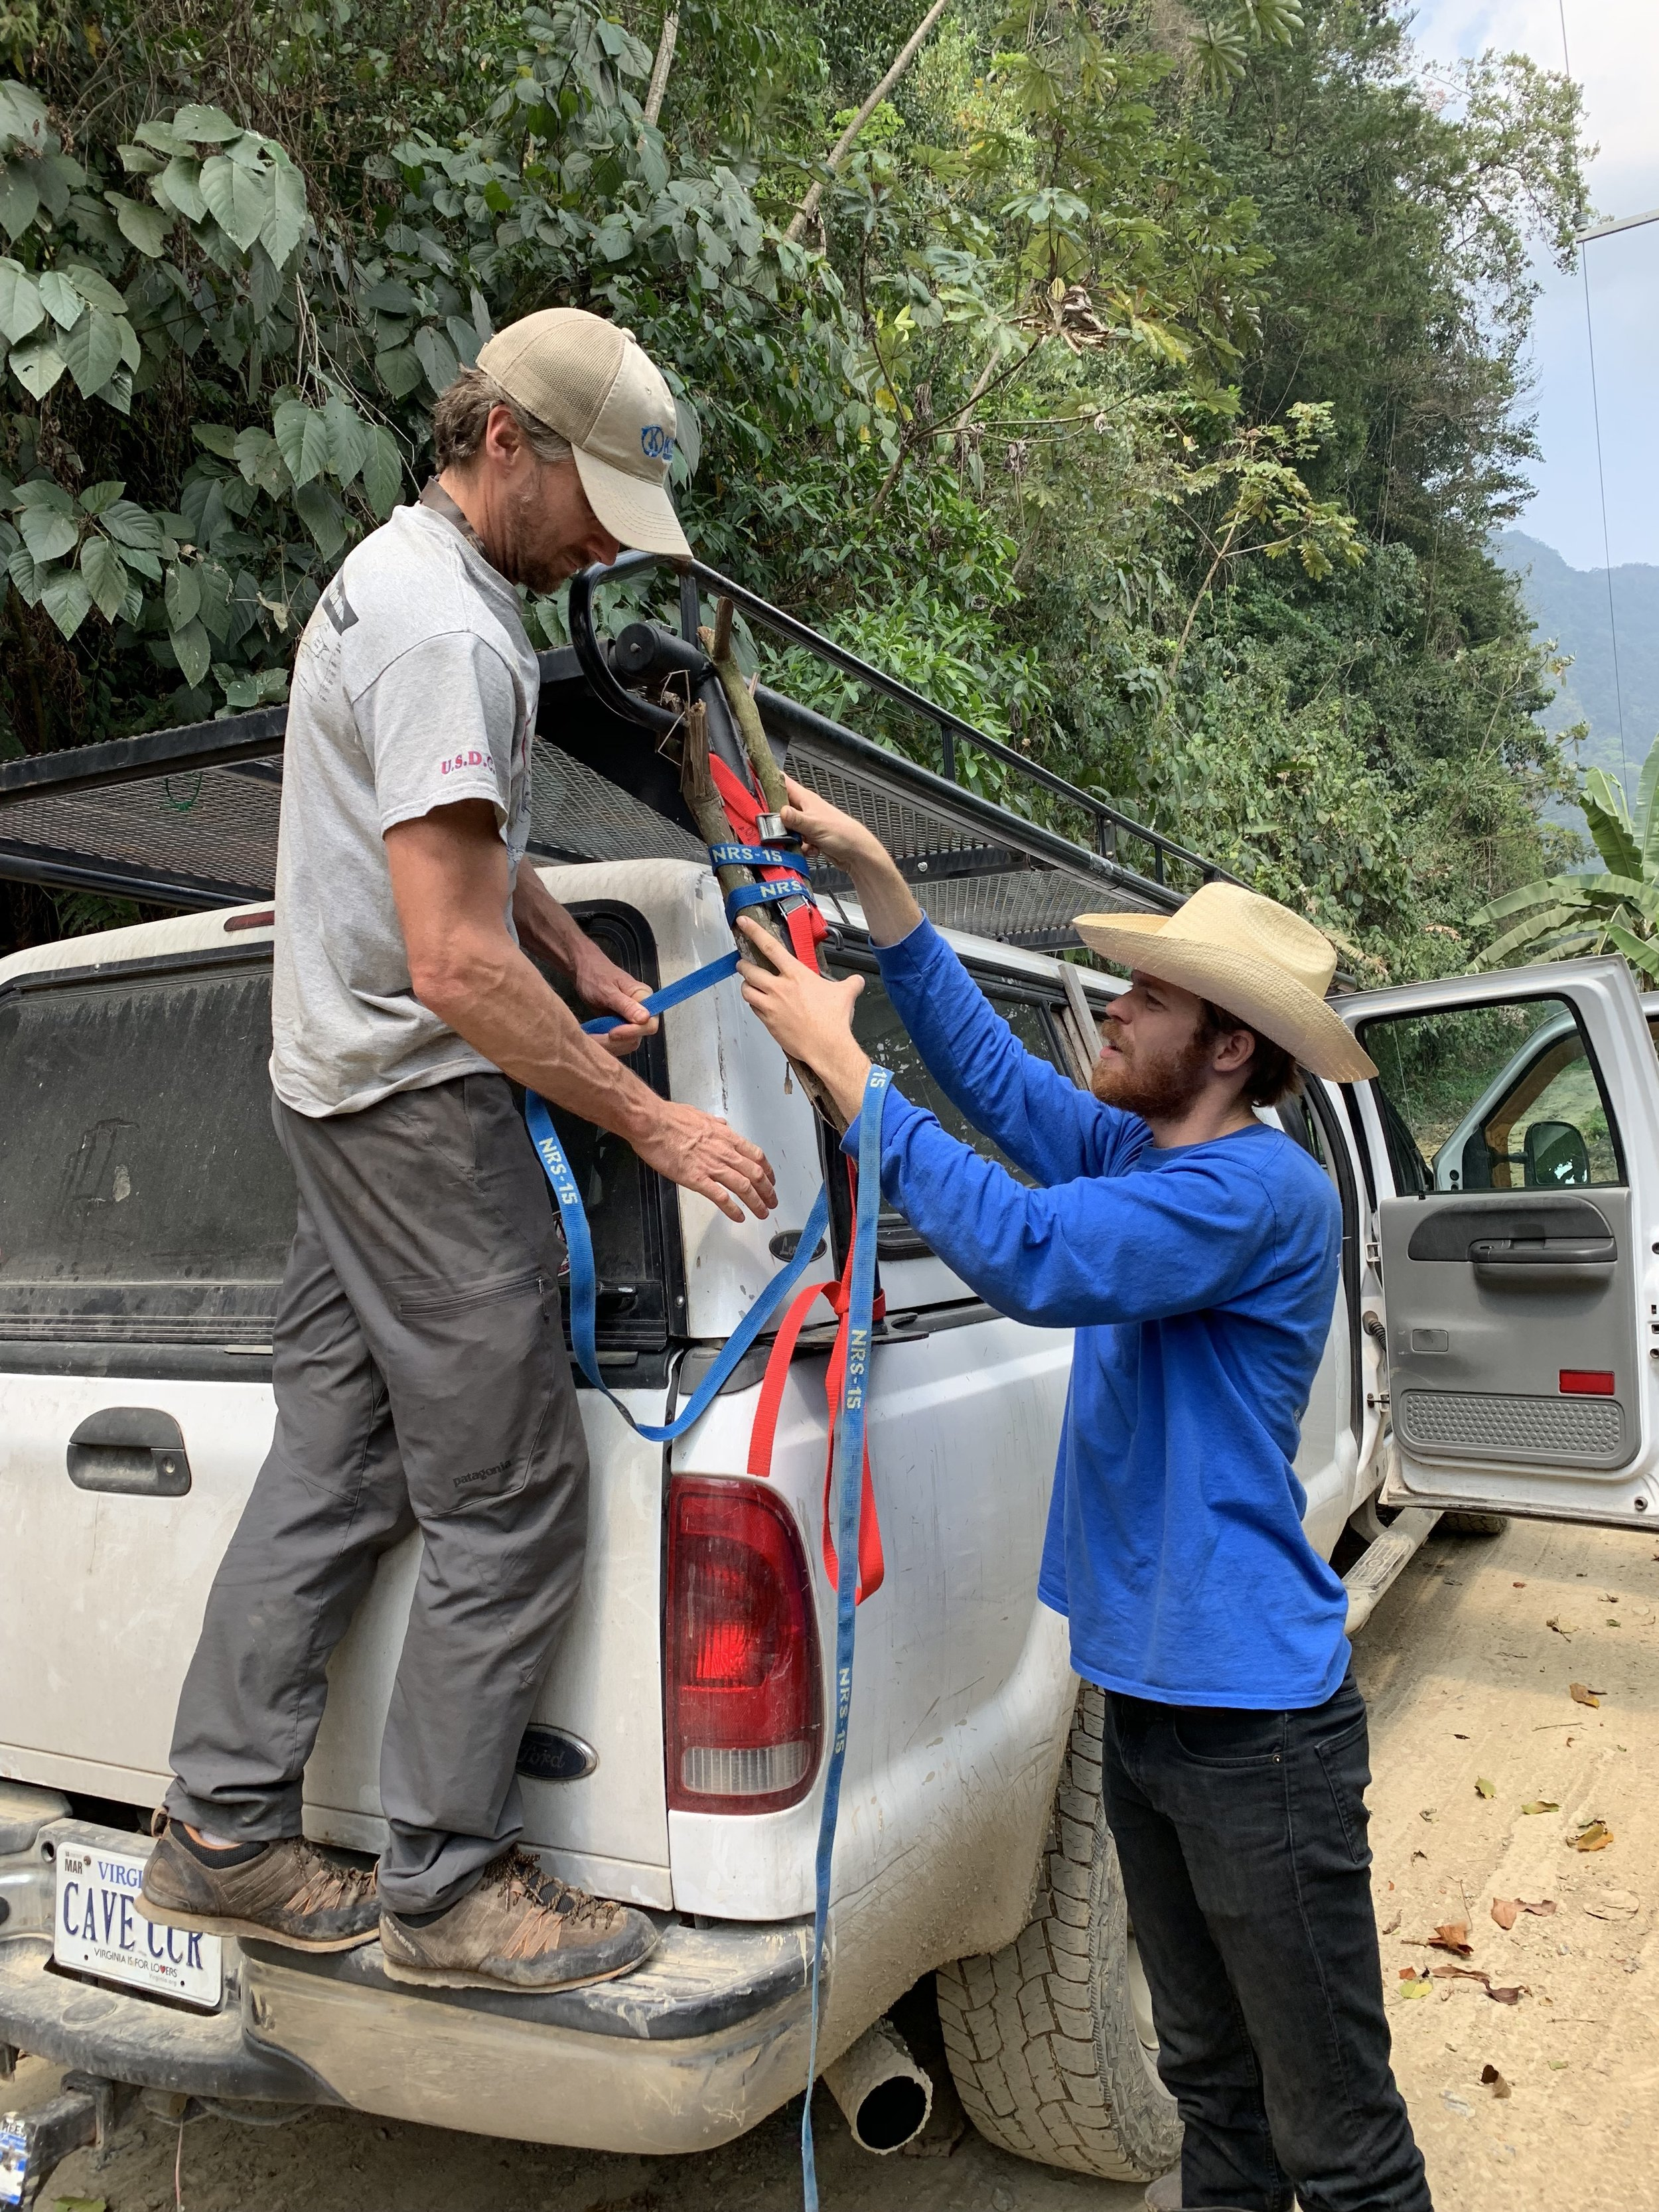 Jon Lillestolen and Steve Lambert fixing the roof rack on the expedition truck. Photo by Teddy Garlock.